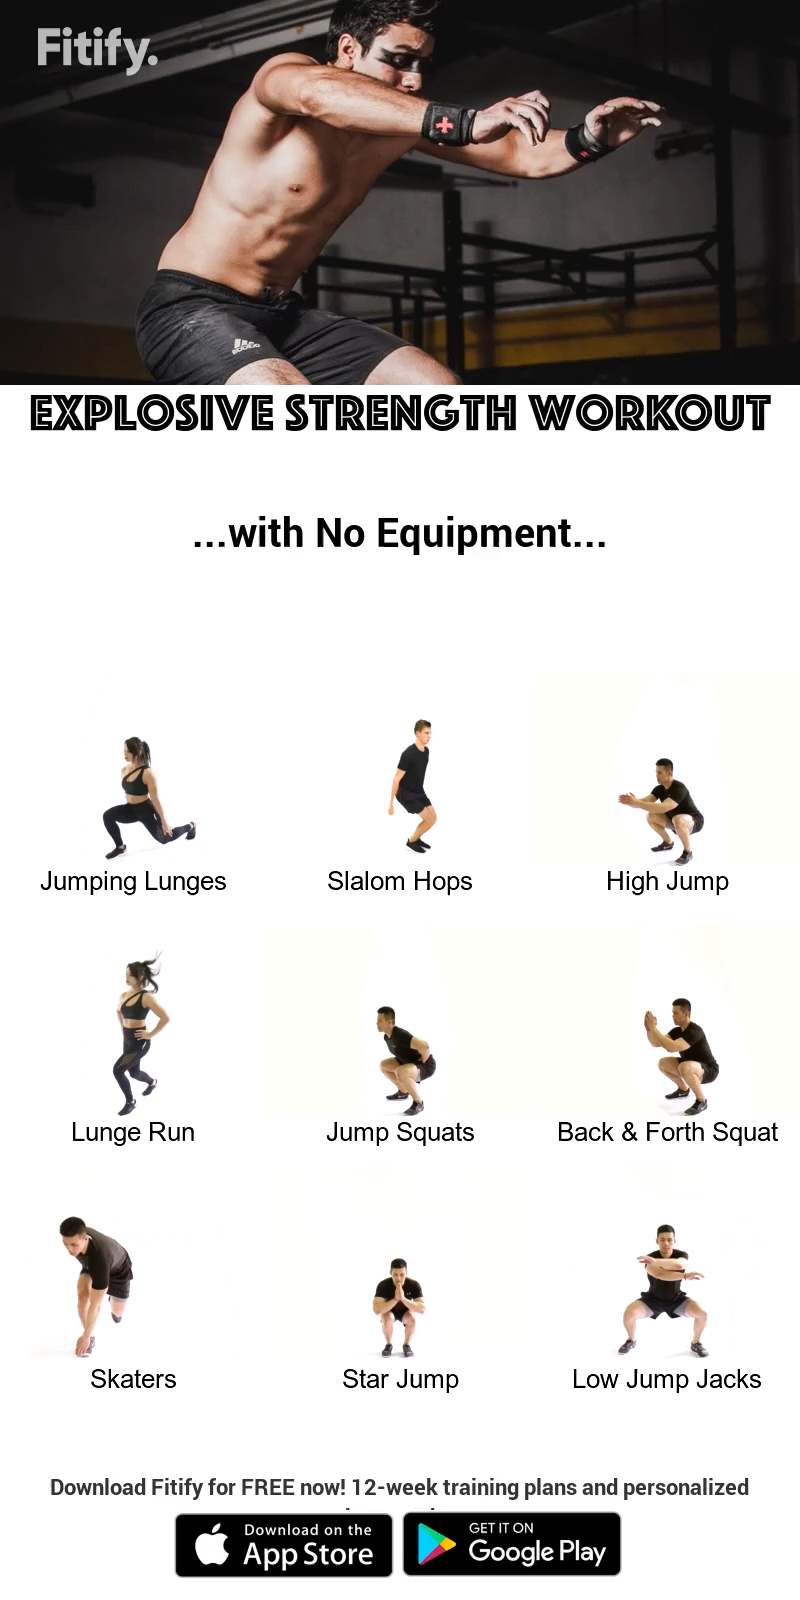 Explosive Strength Workout using NO Equipment